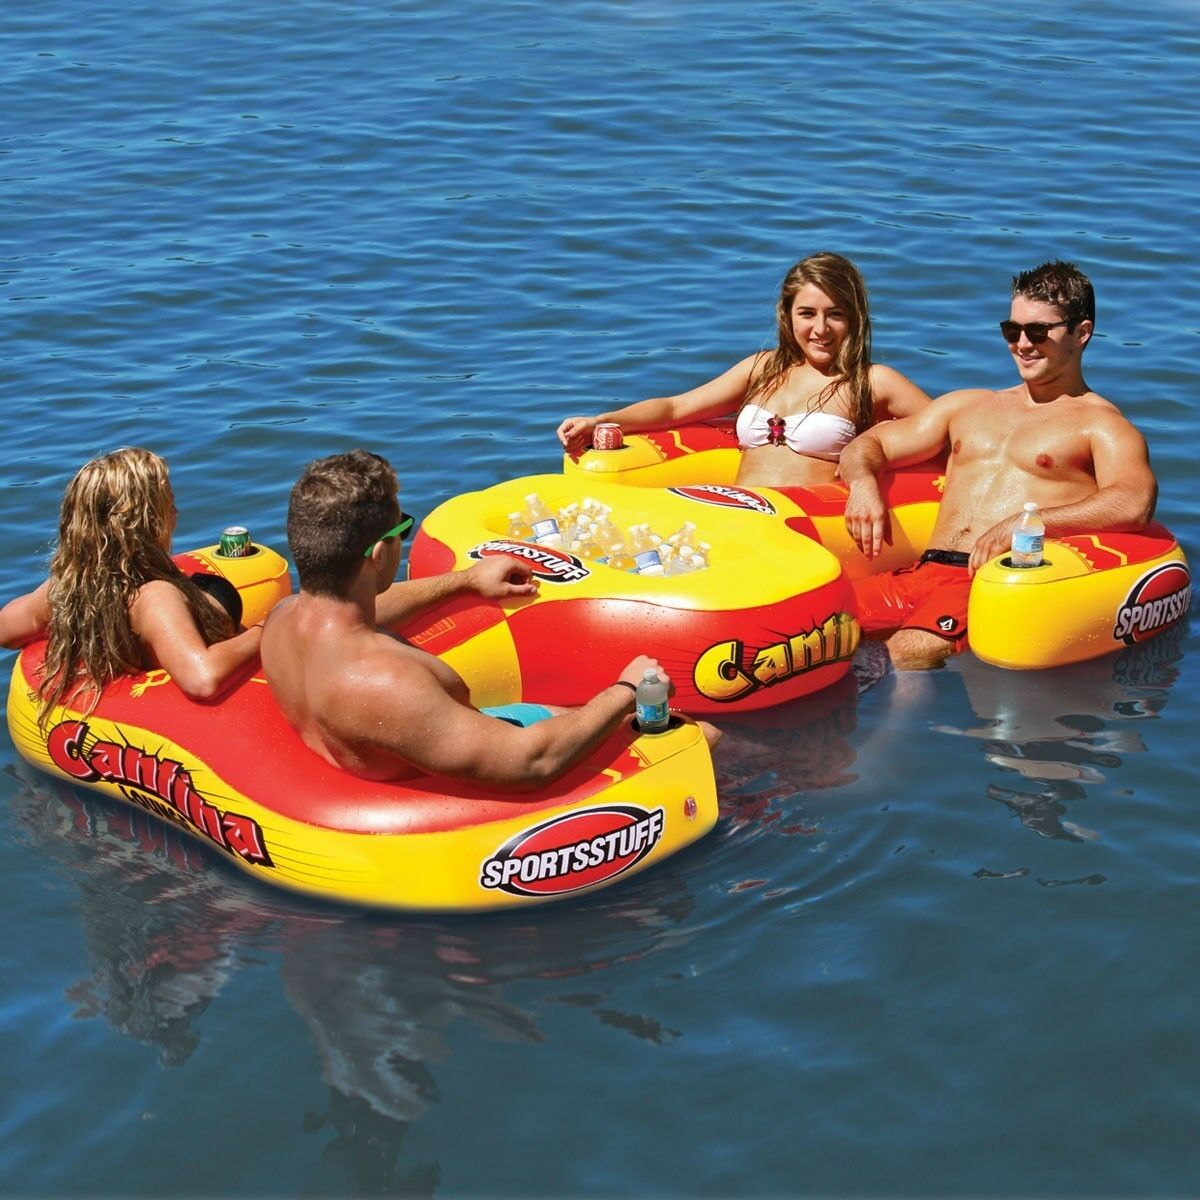 Sportsstuff Cantina 4 Person Pool Lake Lounge w 4 cup holder Inflatable  54-2025